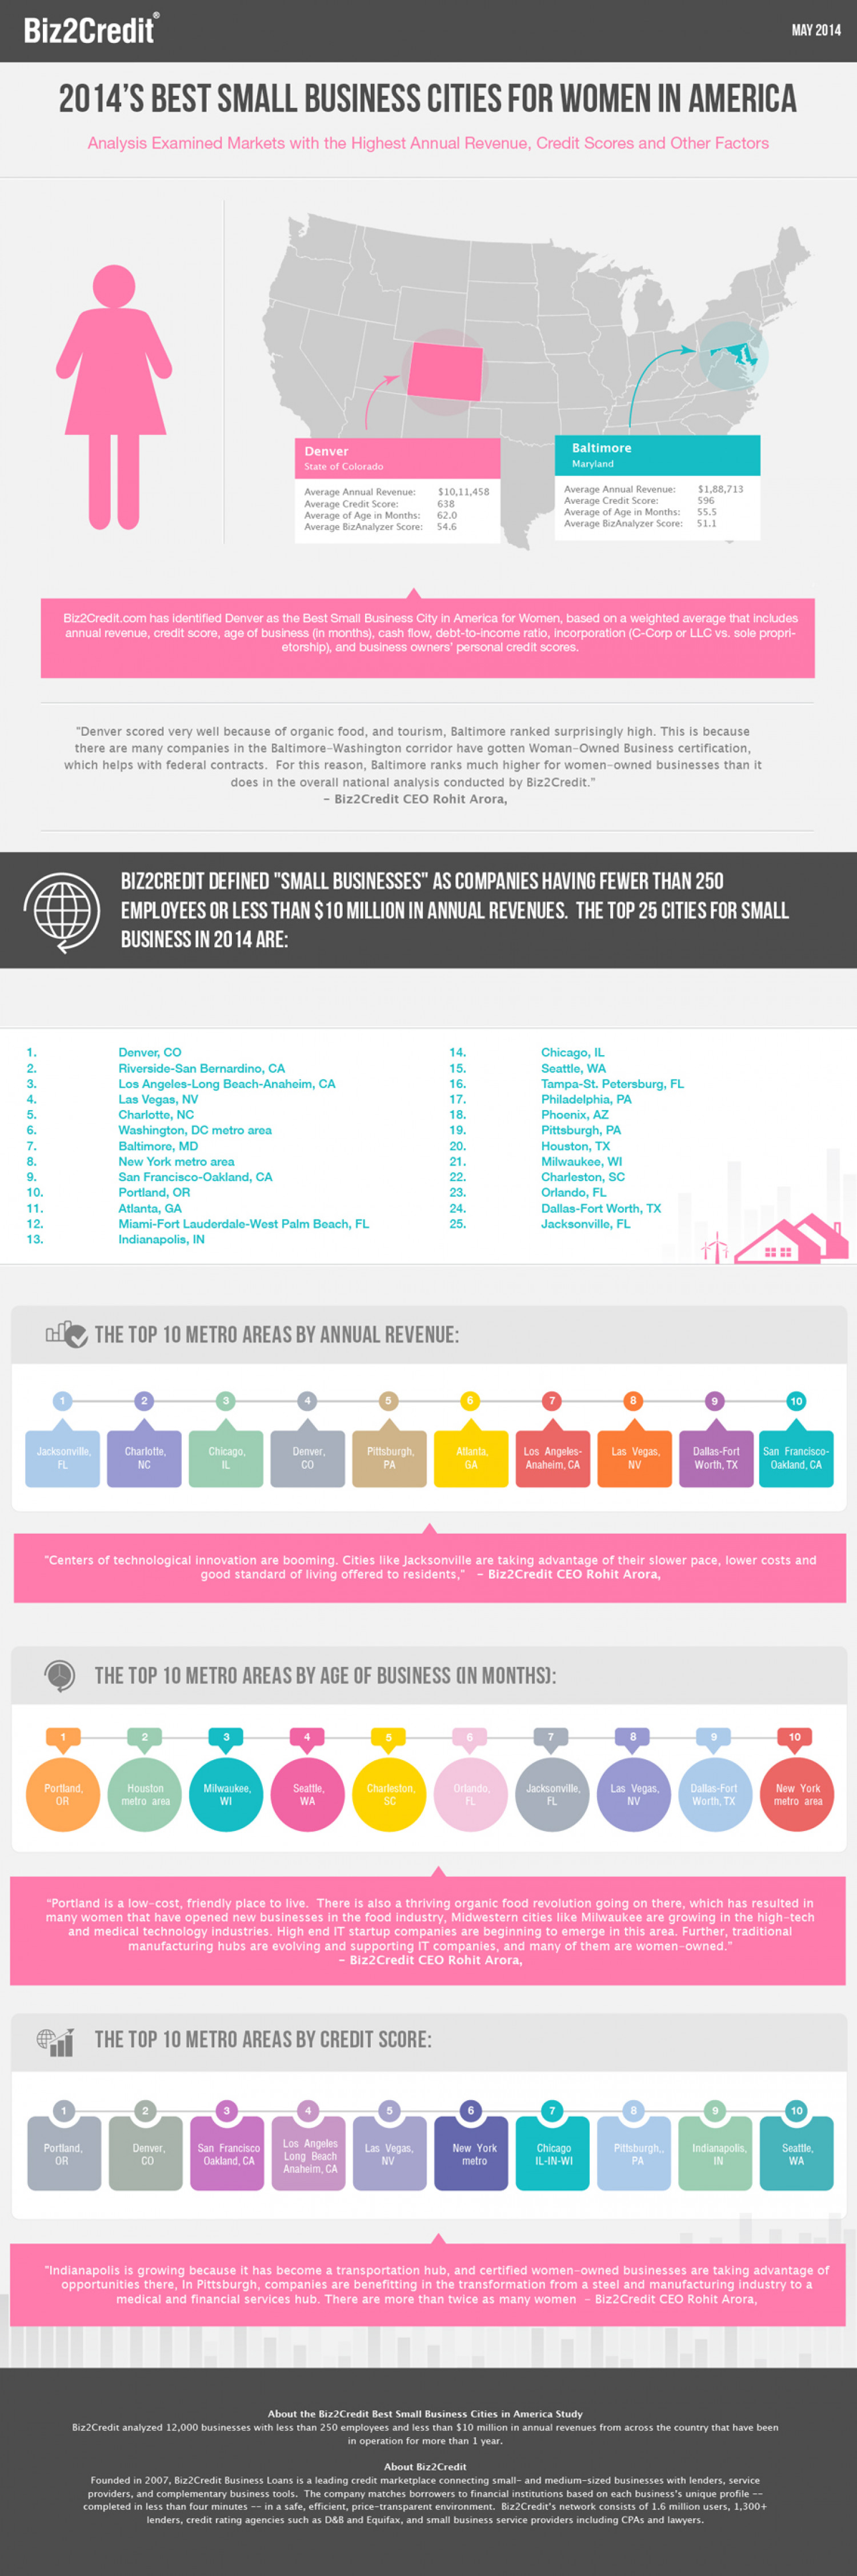 2014's Best Small Business Cities for Women in America Infographic